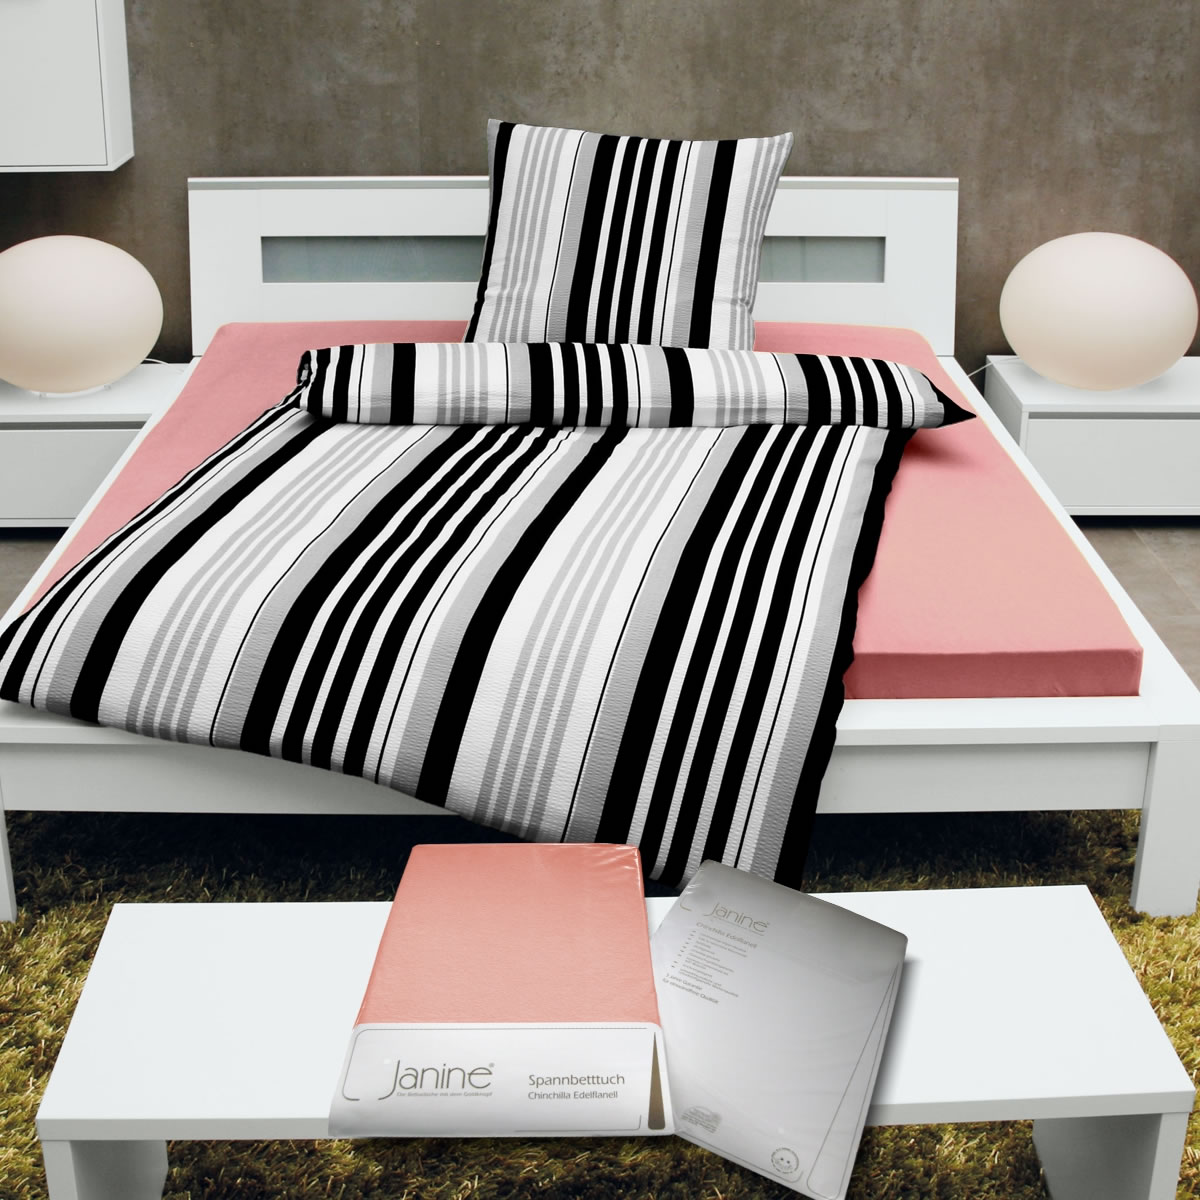 janine chinchilla edel flanell biber spannbettlaken baumwolle spannbetttuch ebay. Black Bedroom Furniture Sets. Home Design Ideas